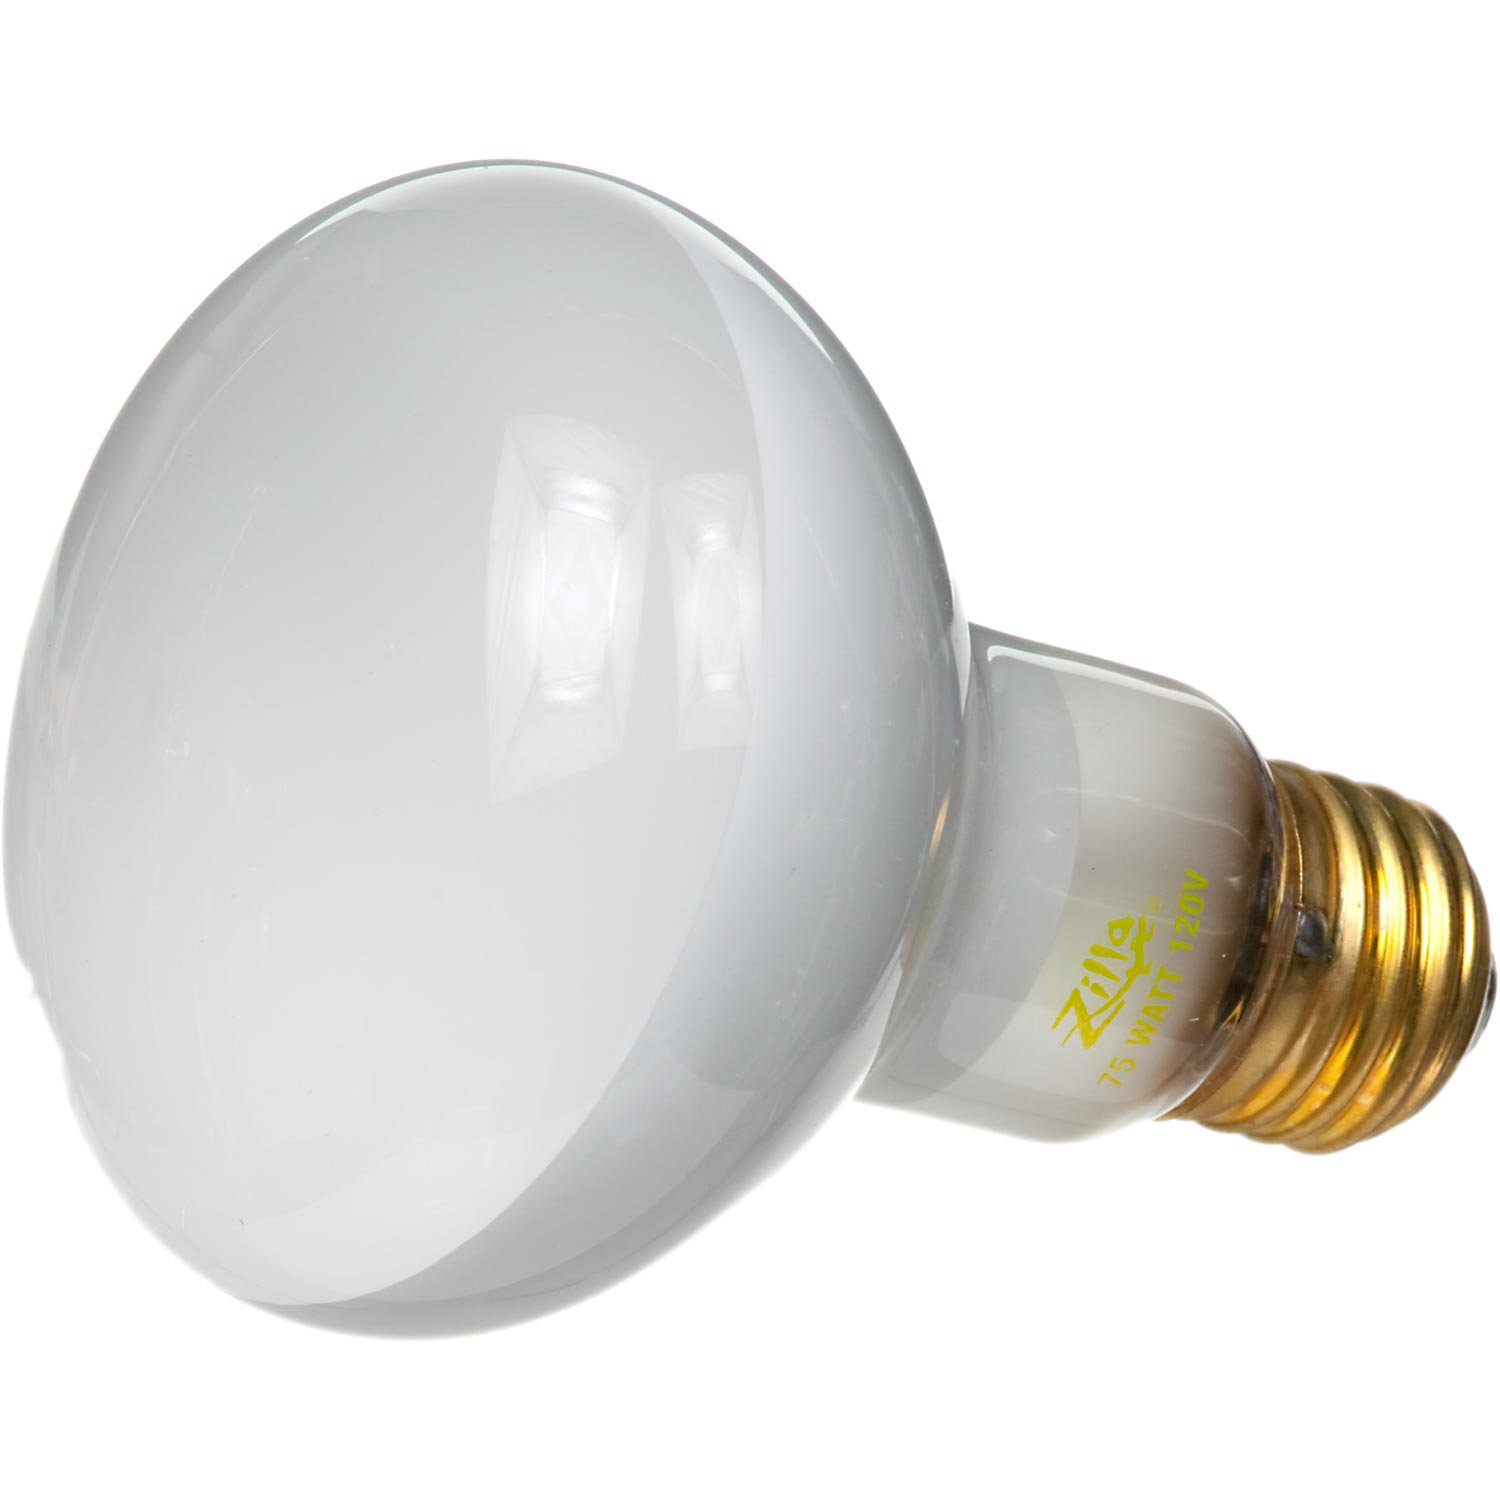 Zilla Day White Light Incandescent Spot Bulbs, 75 Watts